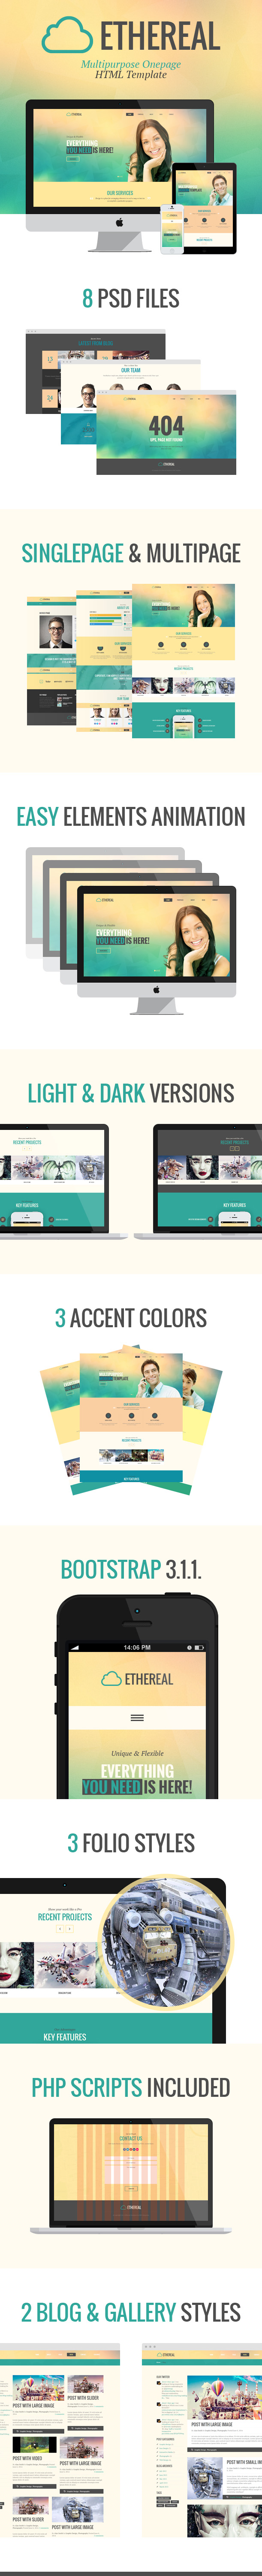 Ethereal - Multipurpose Parallax HTML Template - 1